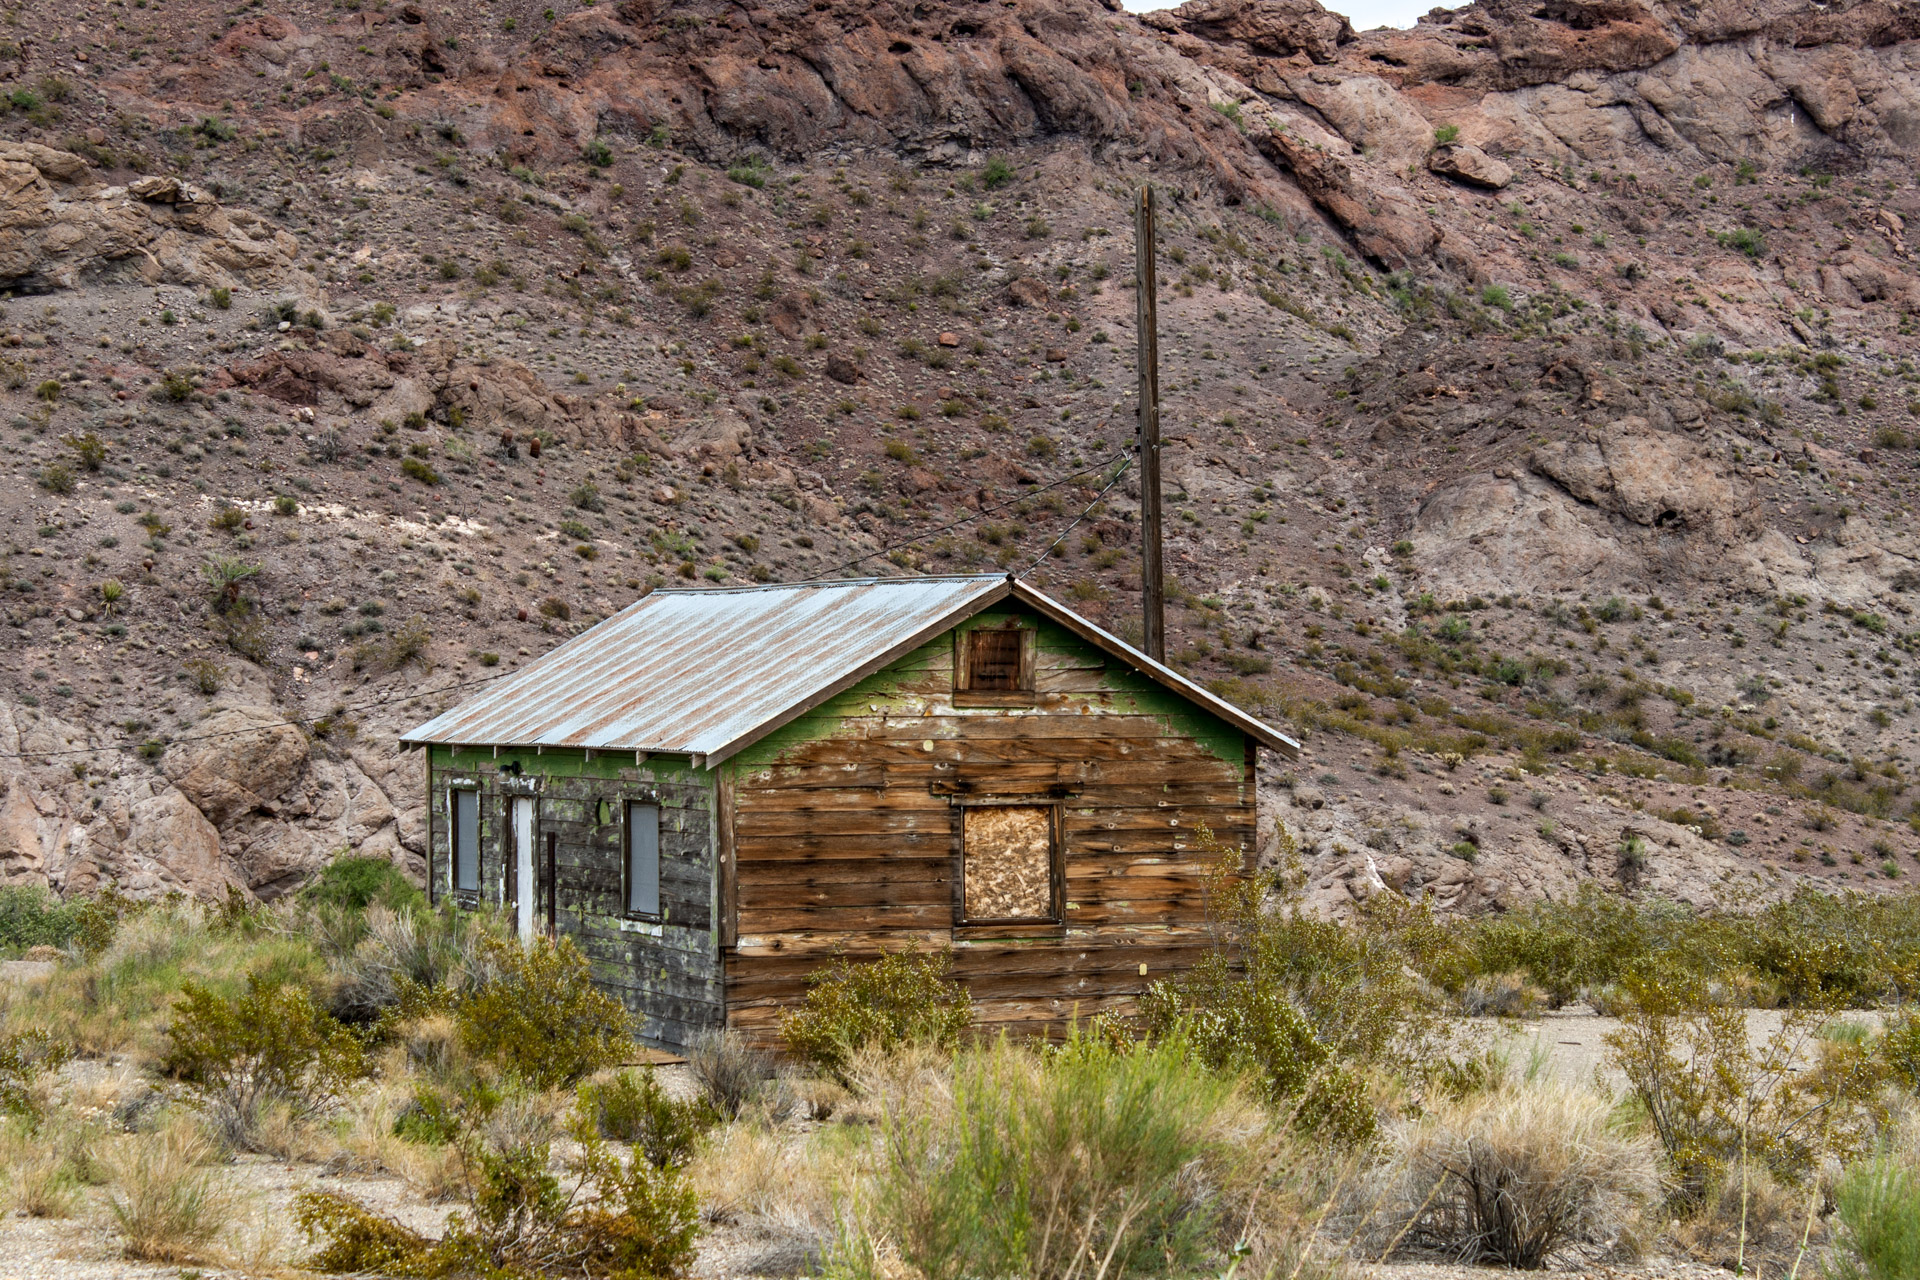 Nelson, Nevada - A Weathered Mining Town House (close)